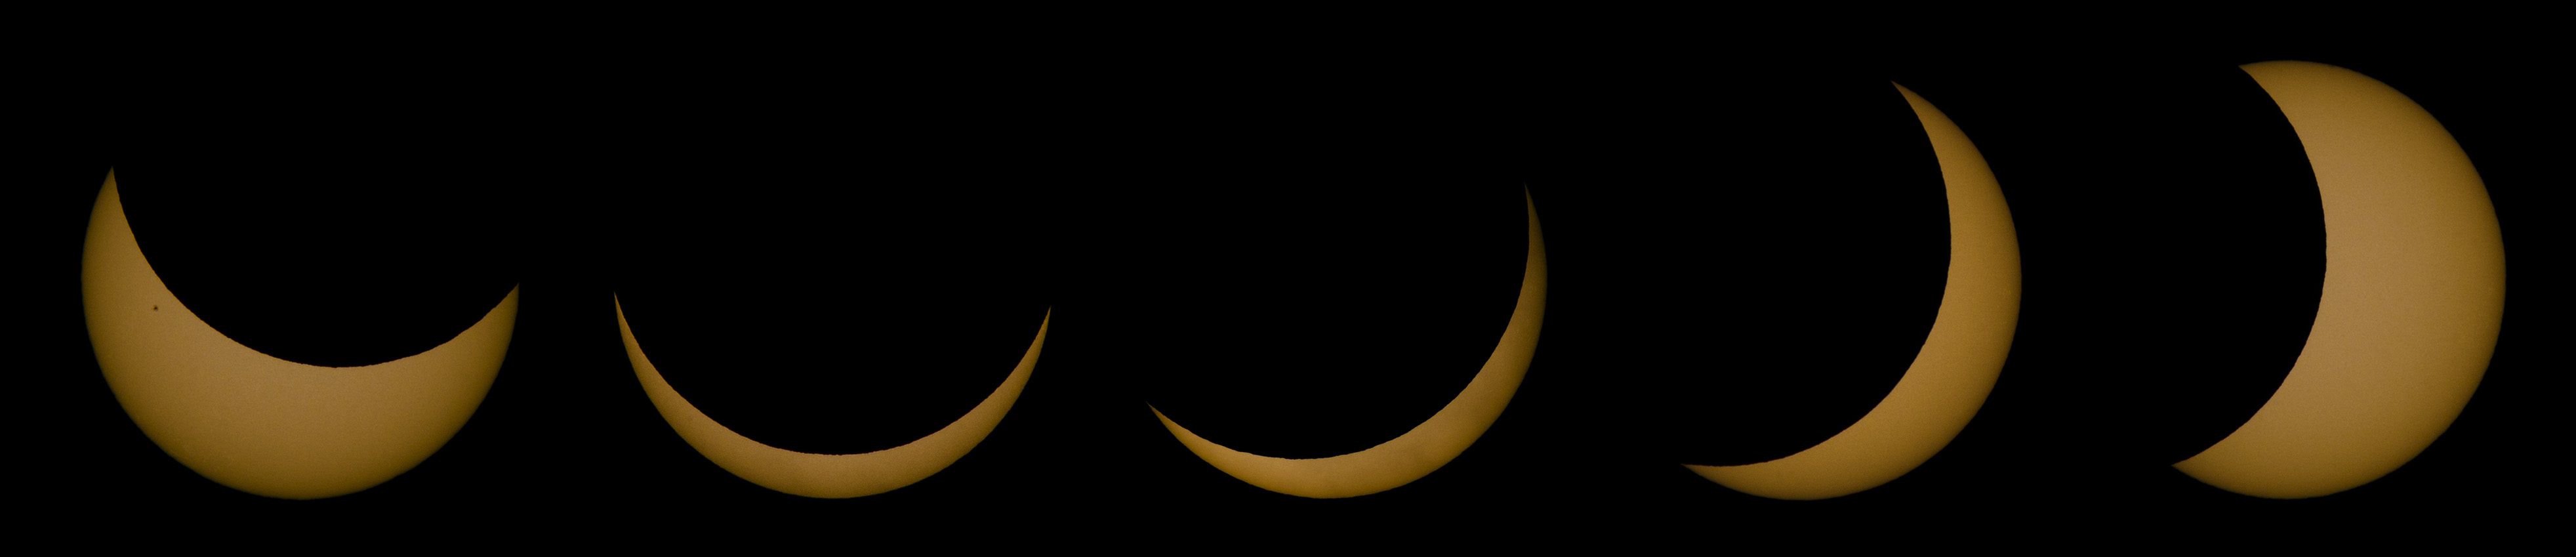 Moon transit sequence